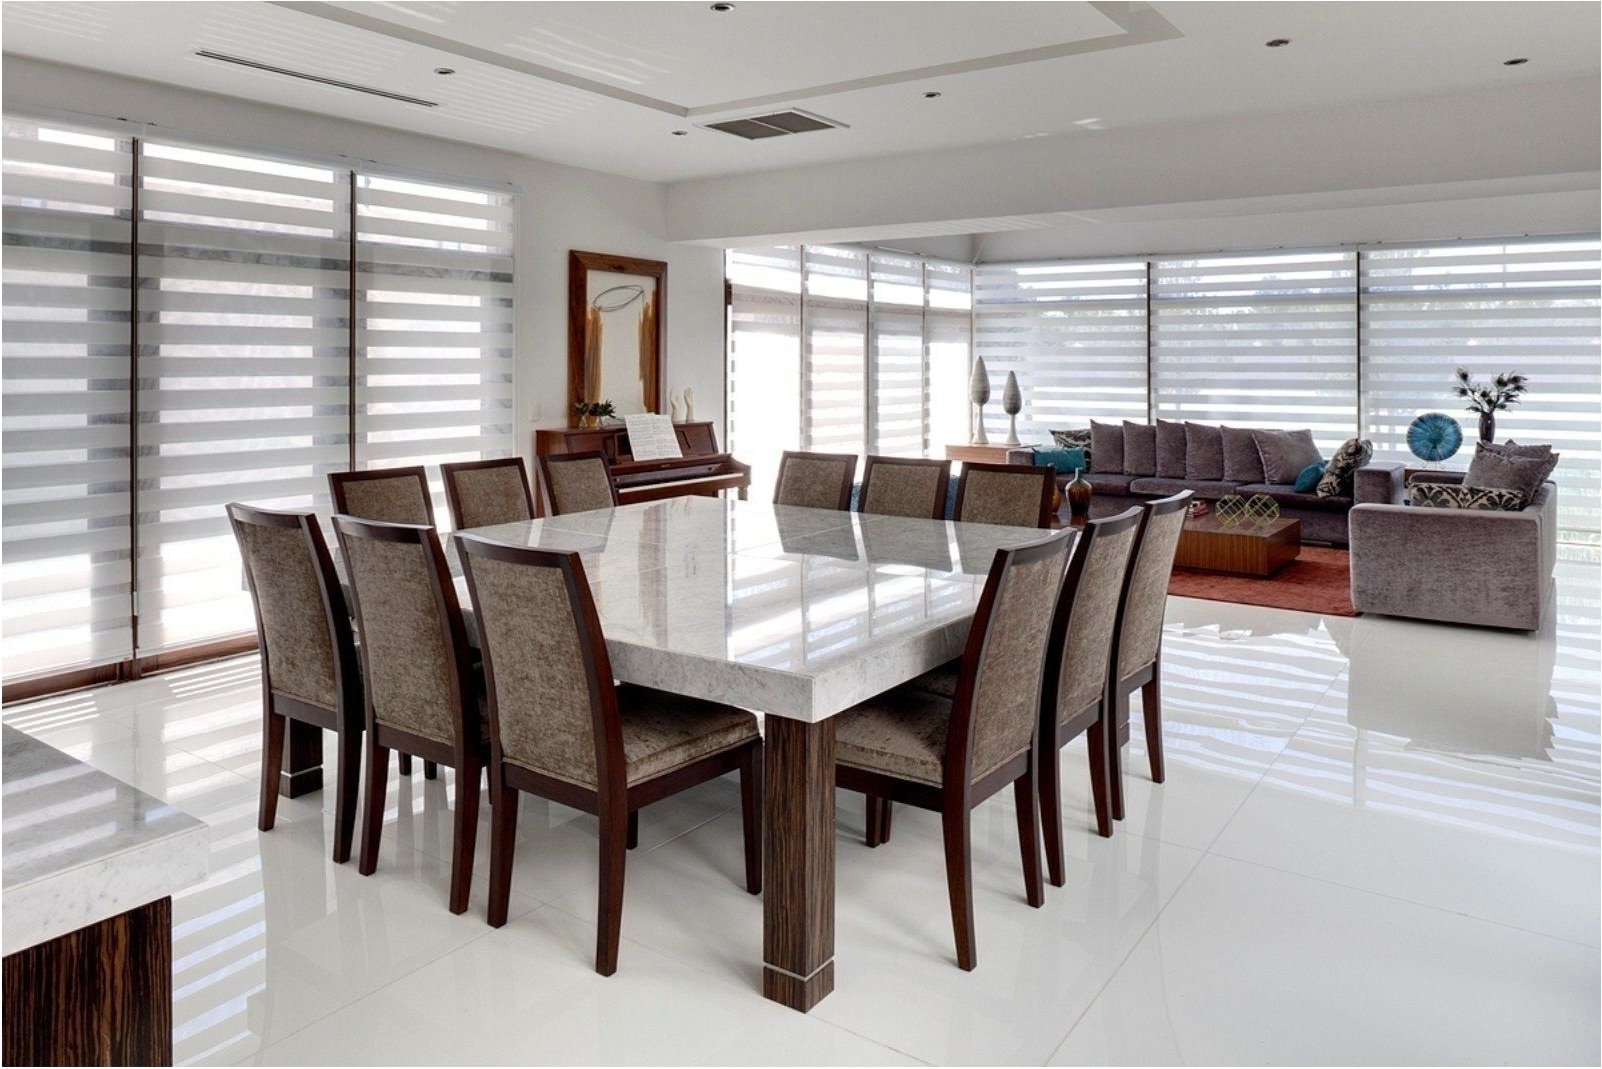 Nice Nice 10 Seater Dining Table Furniture – 10 Seater Dining Table With Regard To Favorite 10 Seater Dining Tables And Chairs (View 21 of 25)